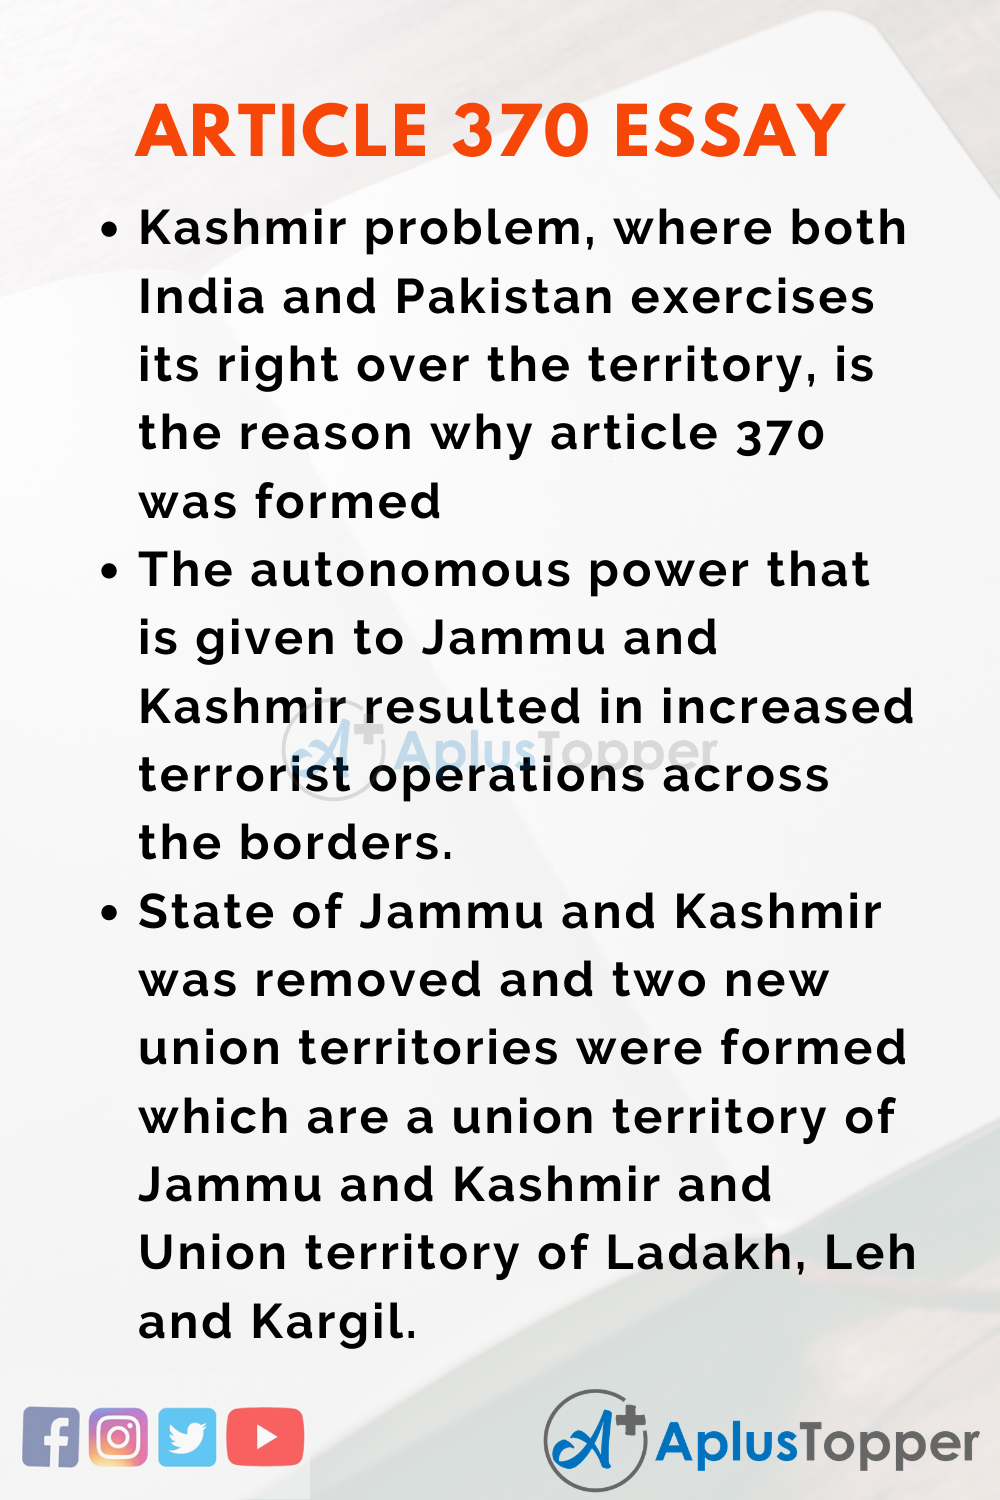 Essay About Article 370